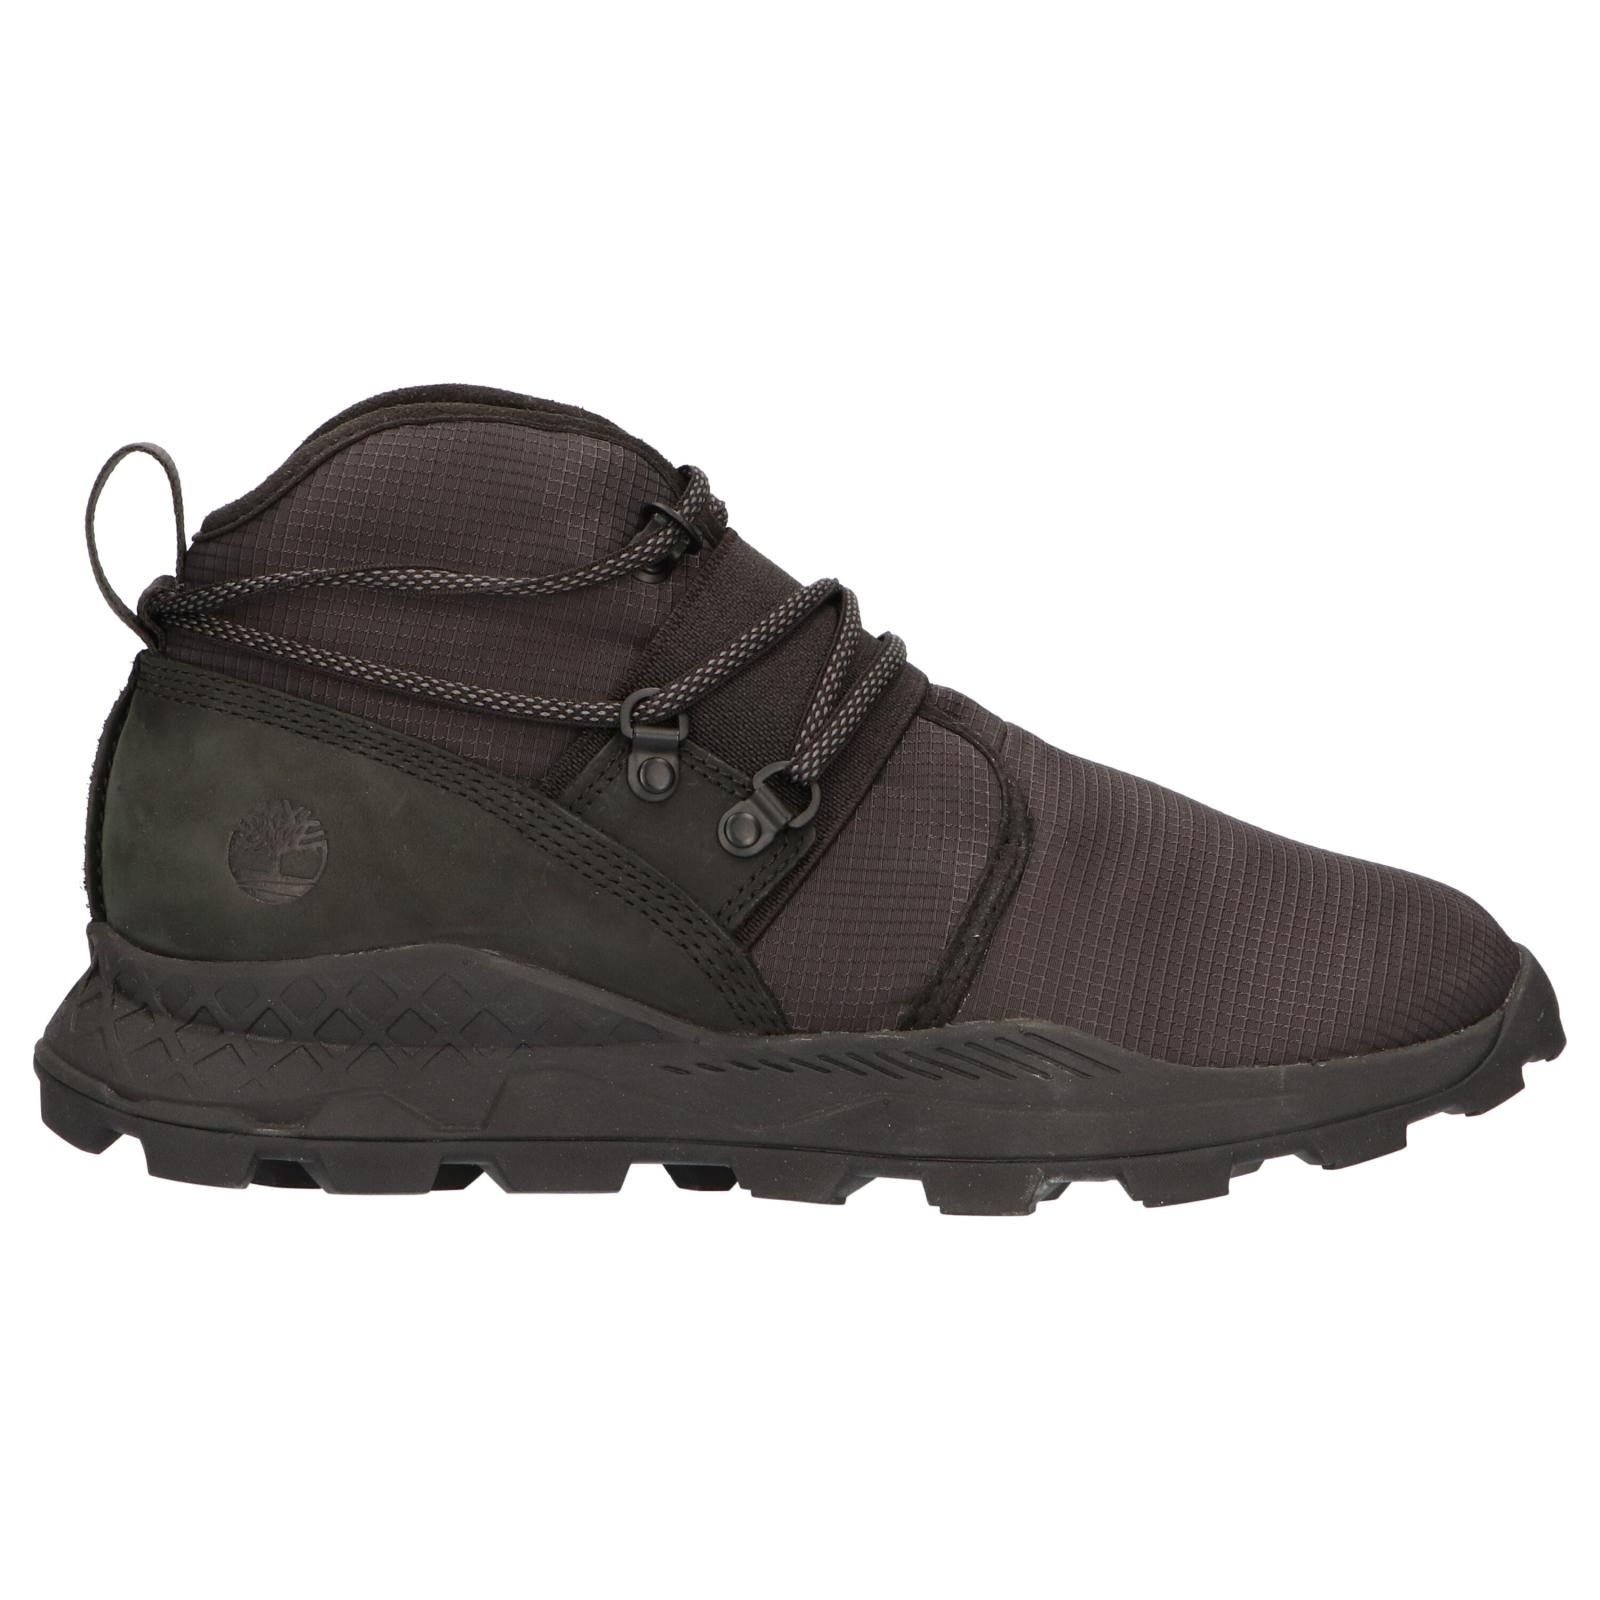 40 Brooklyn A1yy8 Homme Timberland Bottines Black Tailles OP08nwkX